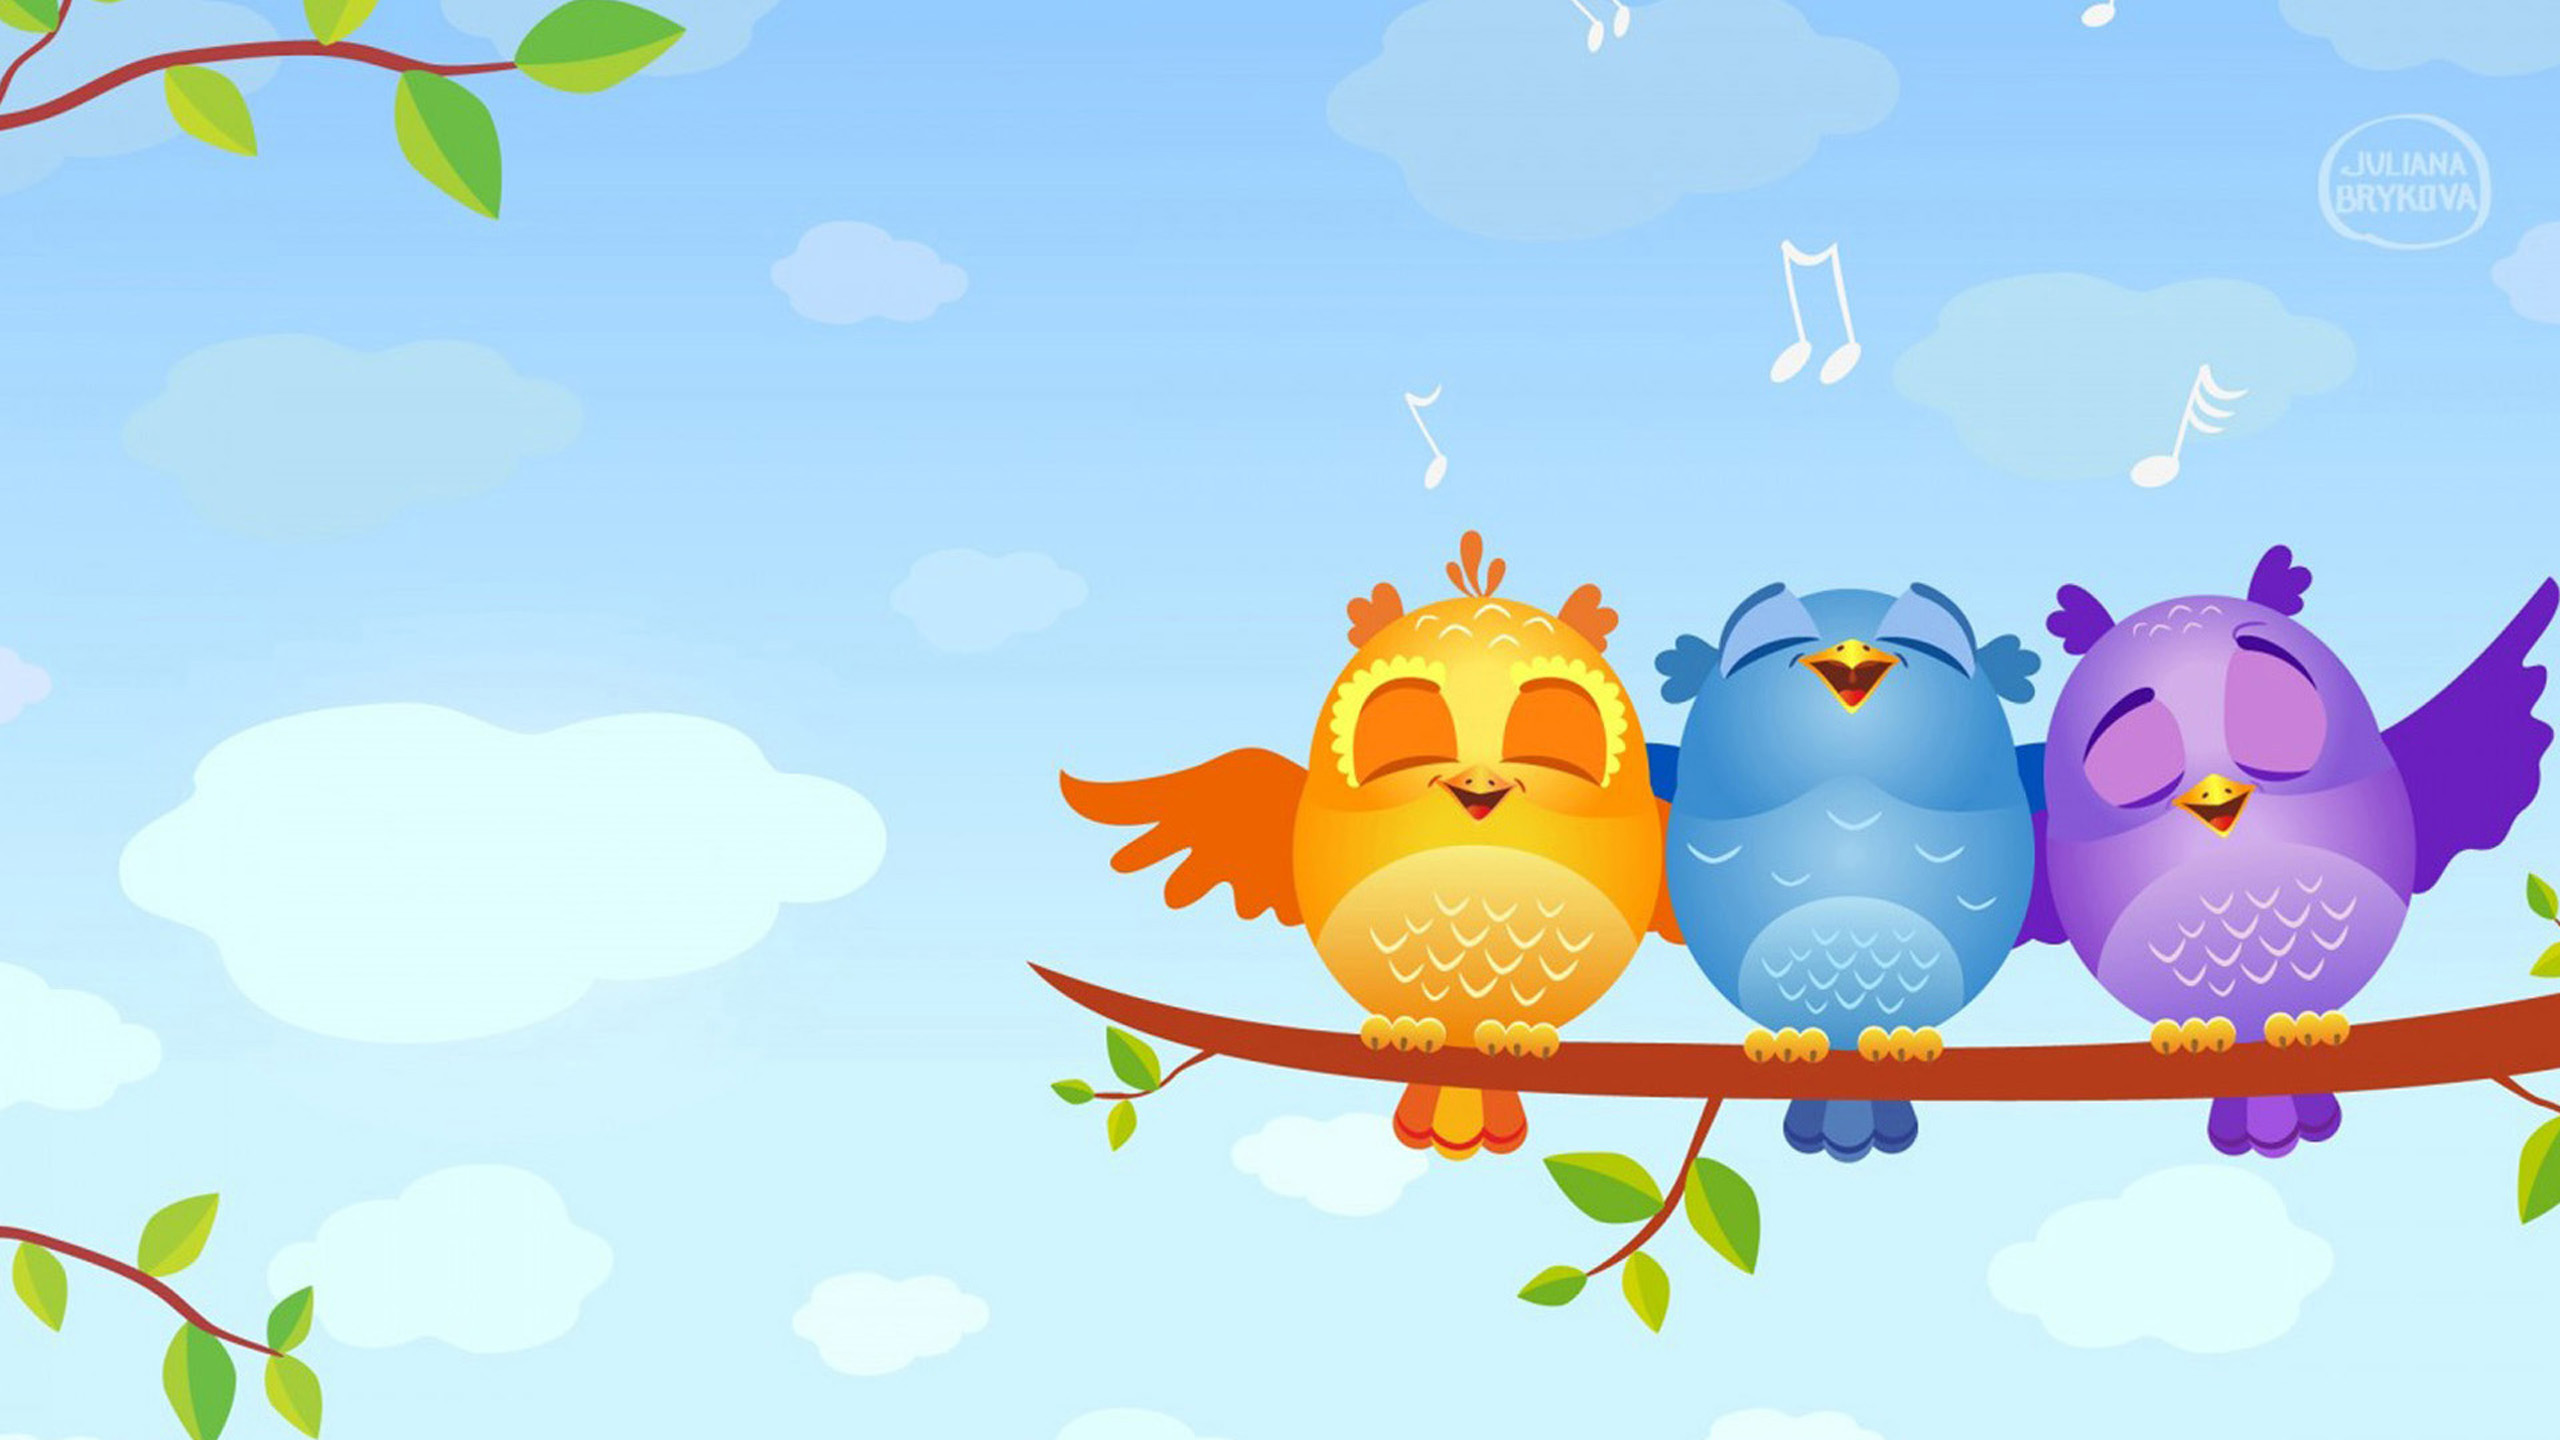 Best images about super cute on Pinterest  Cartoon wallpaper 2560x1440